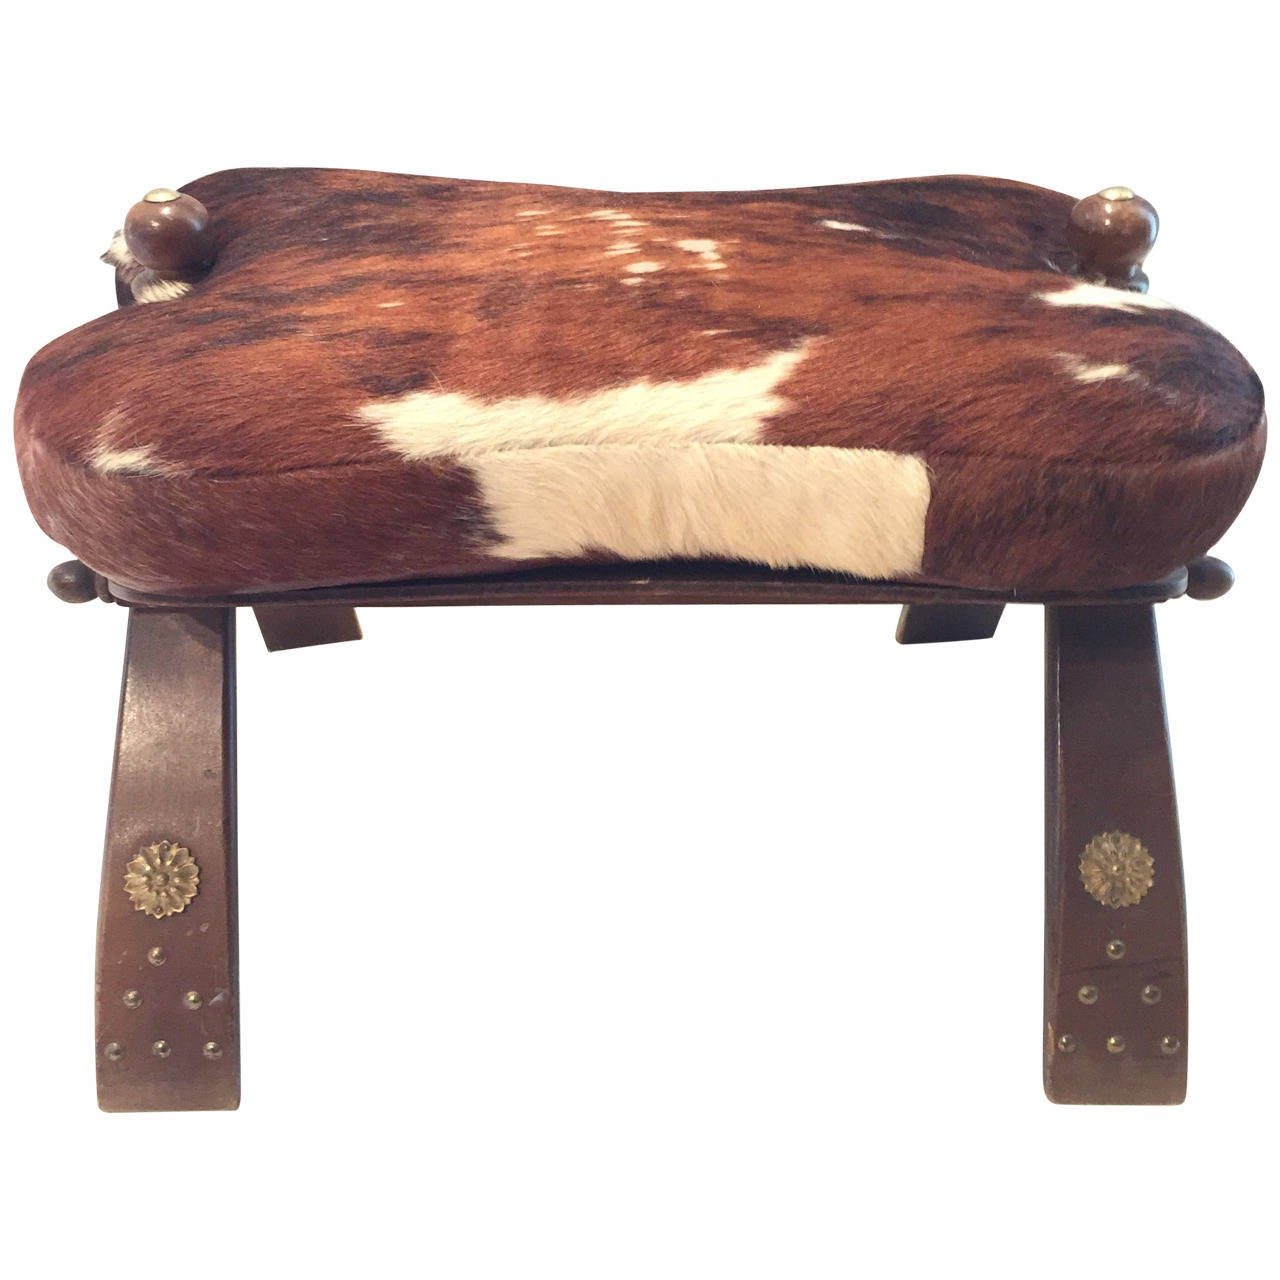 Camel Saddle Seat With Hair On Hide Leather At 1stdibs